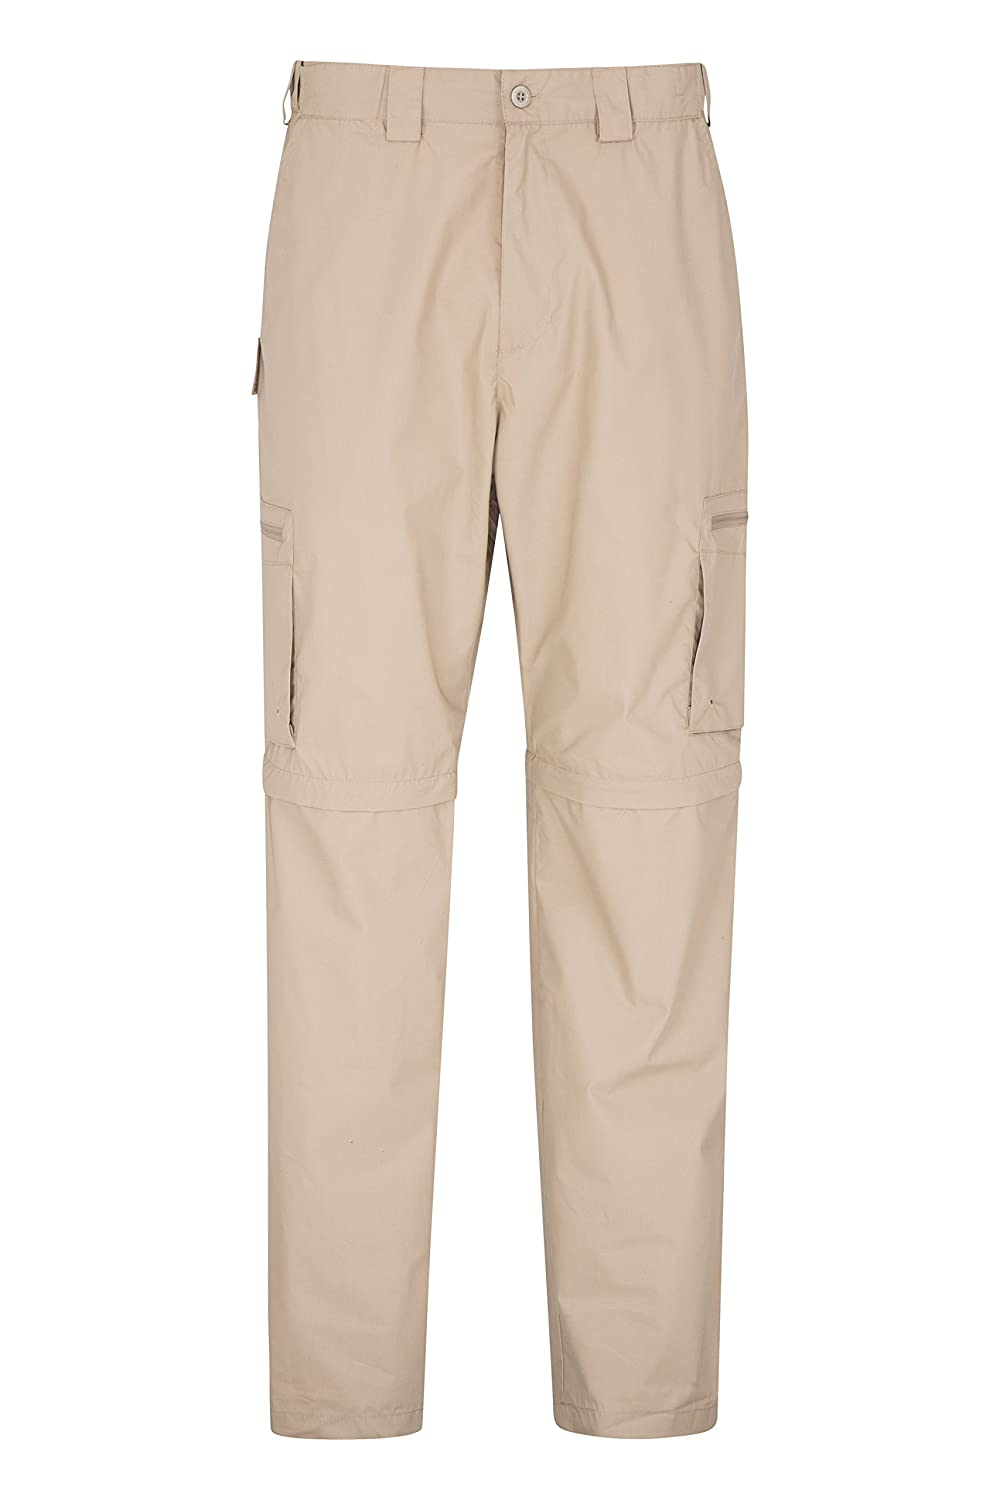 Mountain Warehouse Trek Mens Convertible Trousers -Summer Hiking Pants